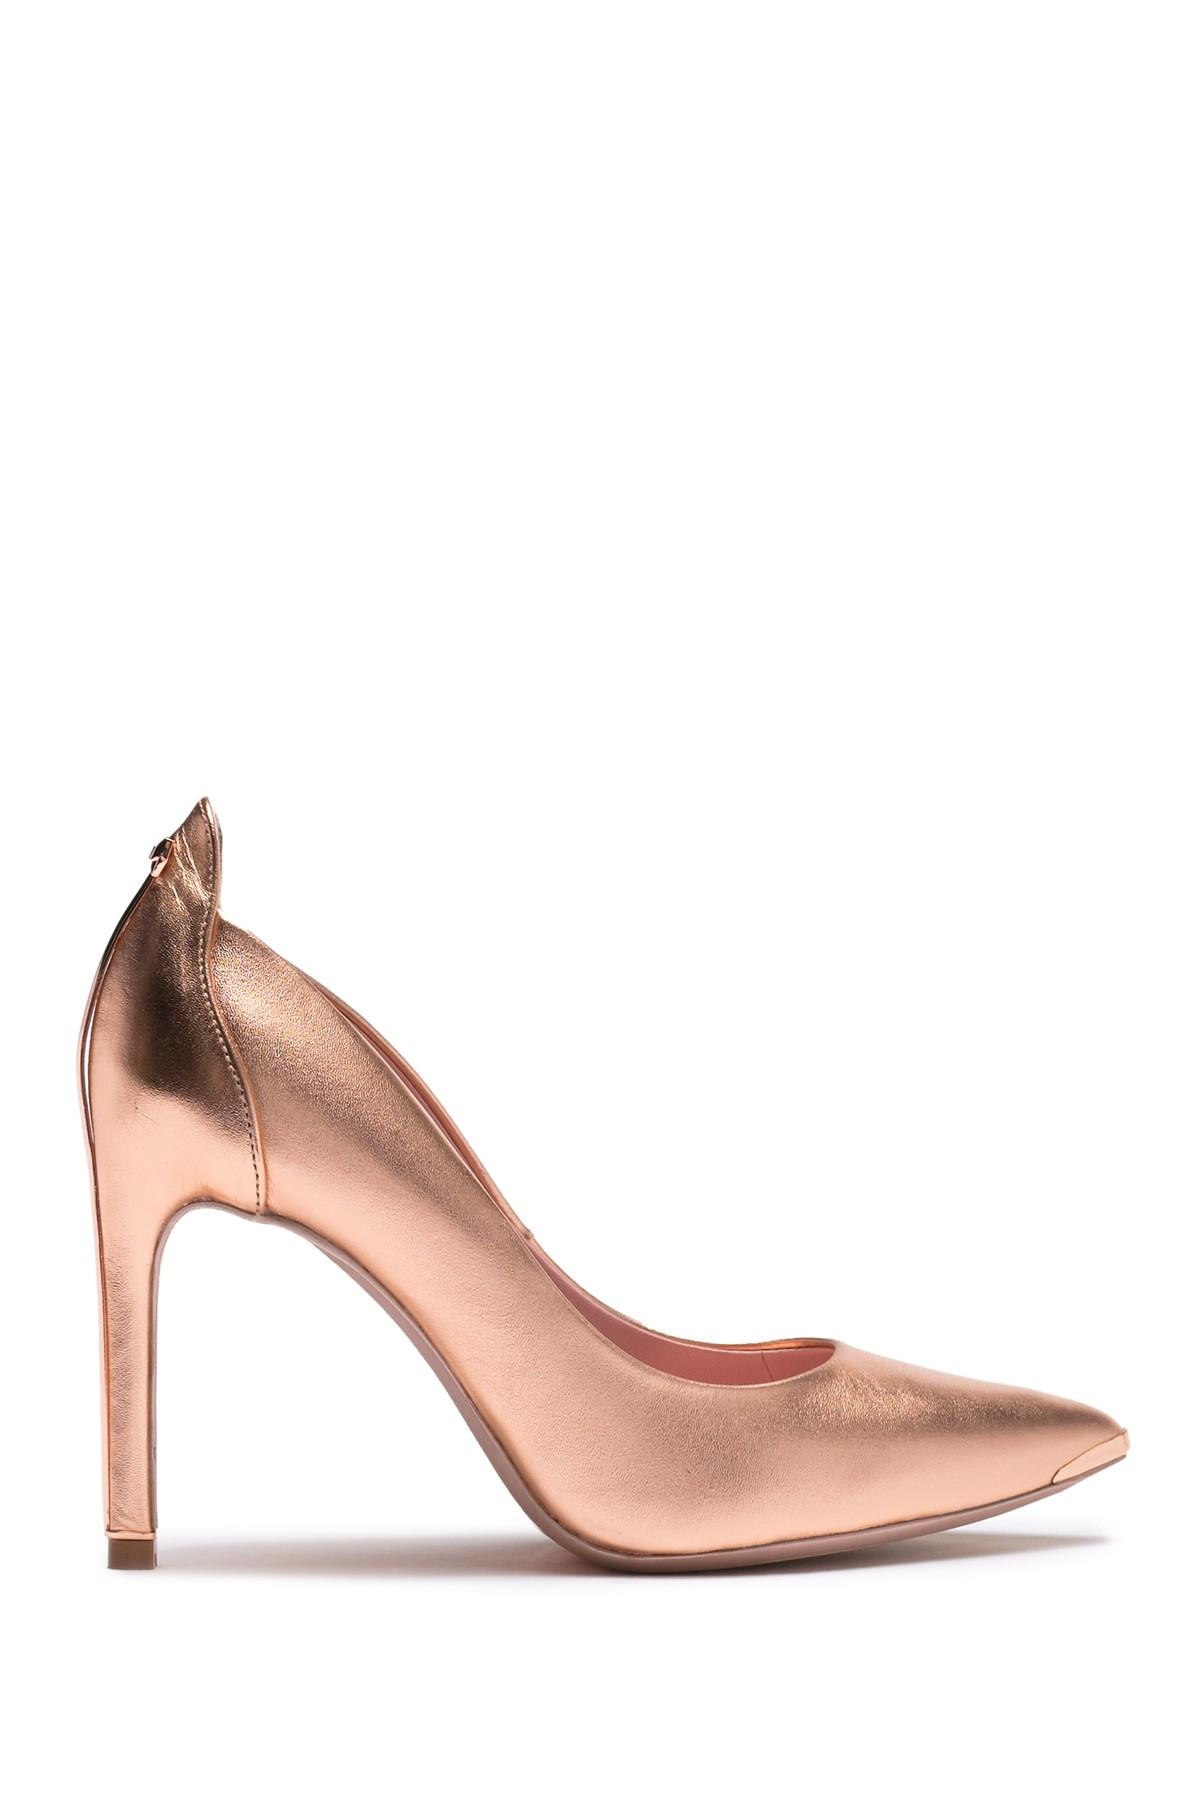 Ted Baker Melisah Leather Pump in Rose